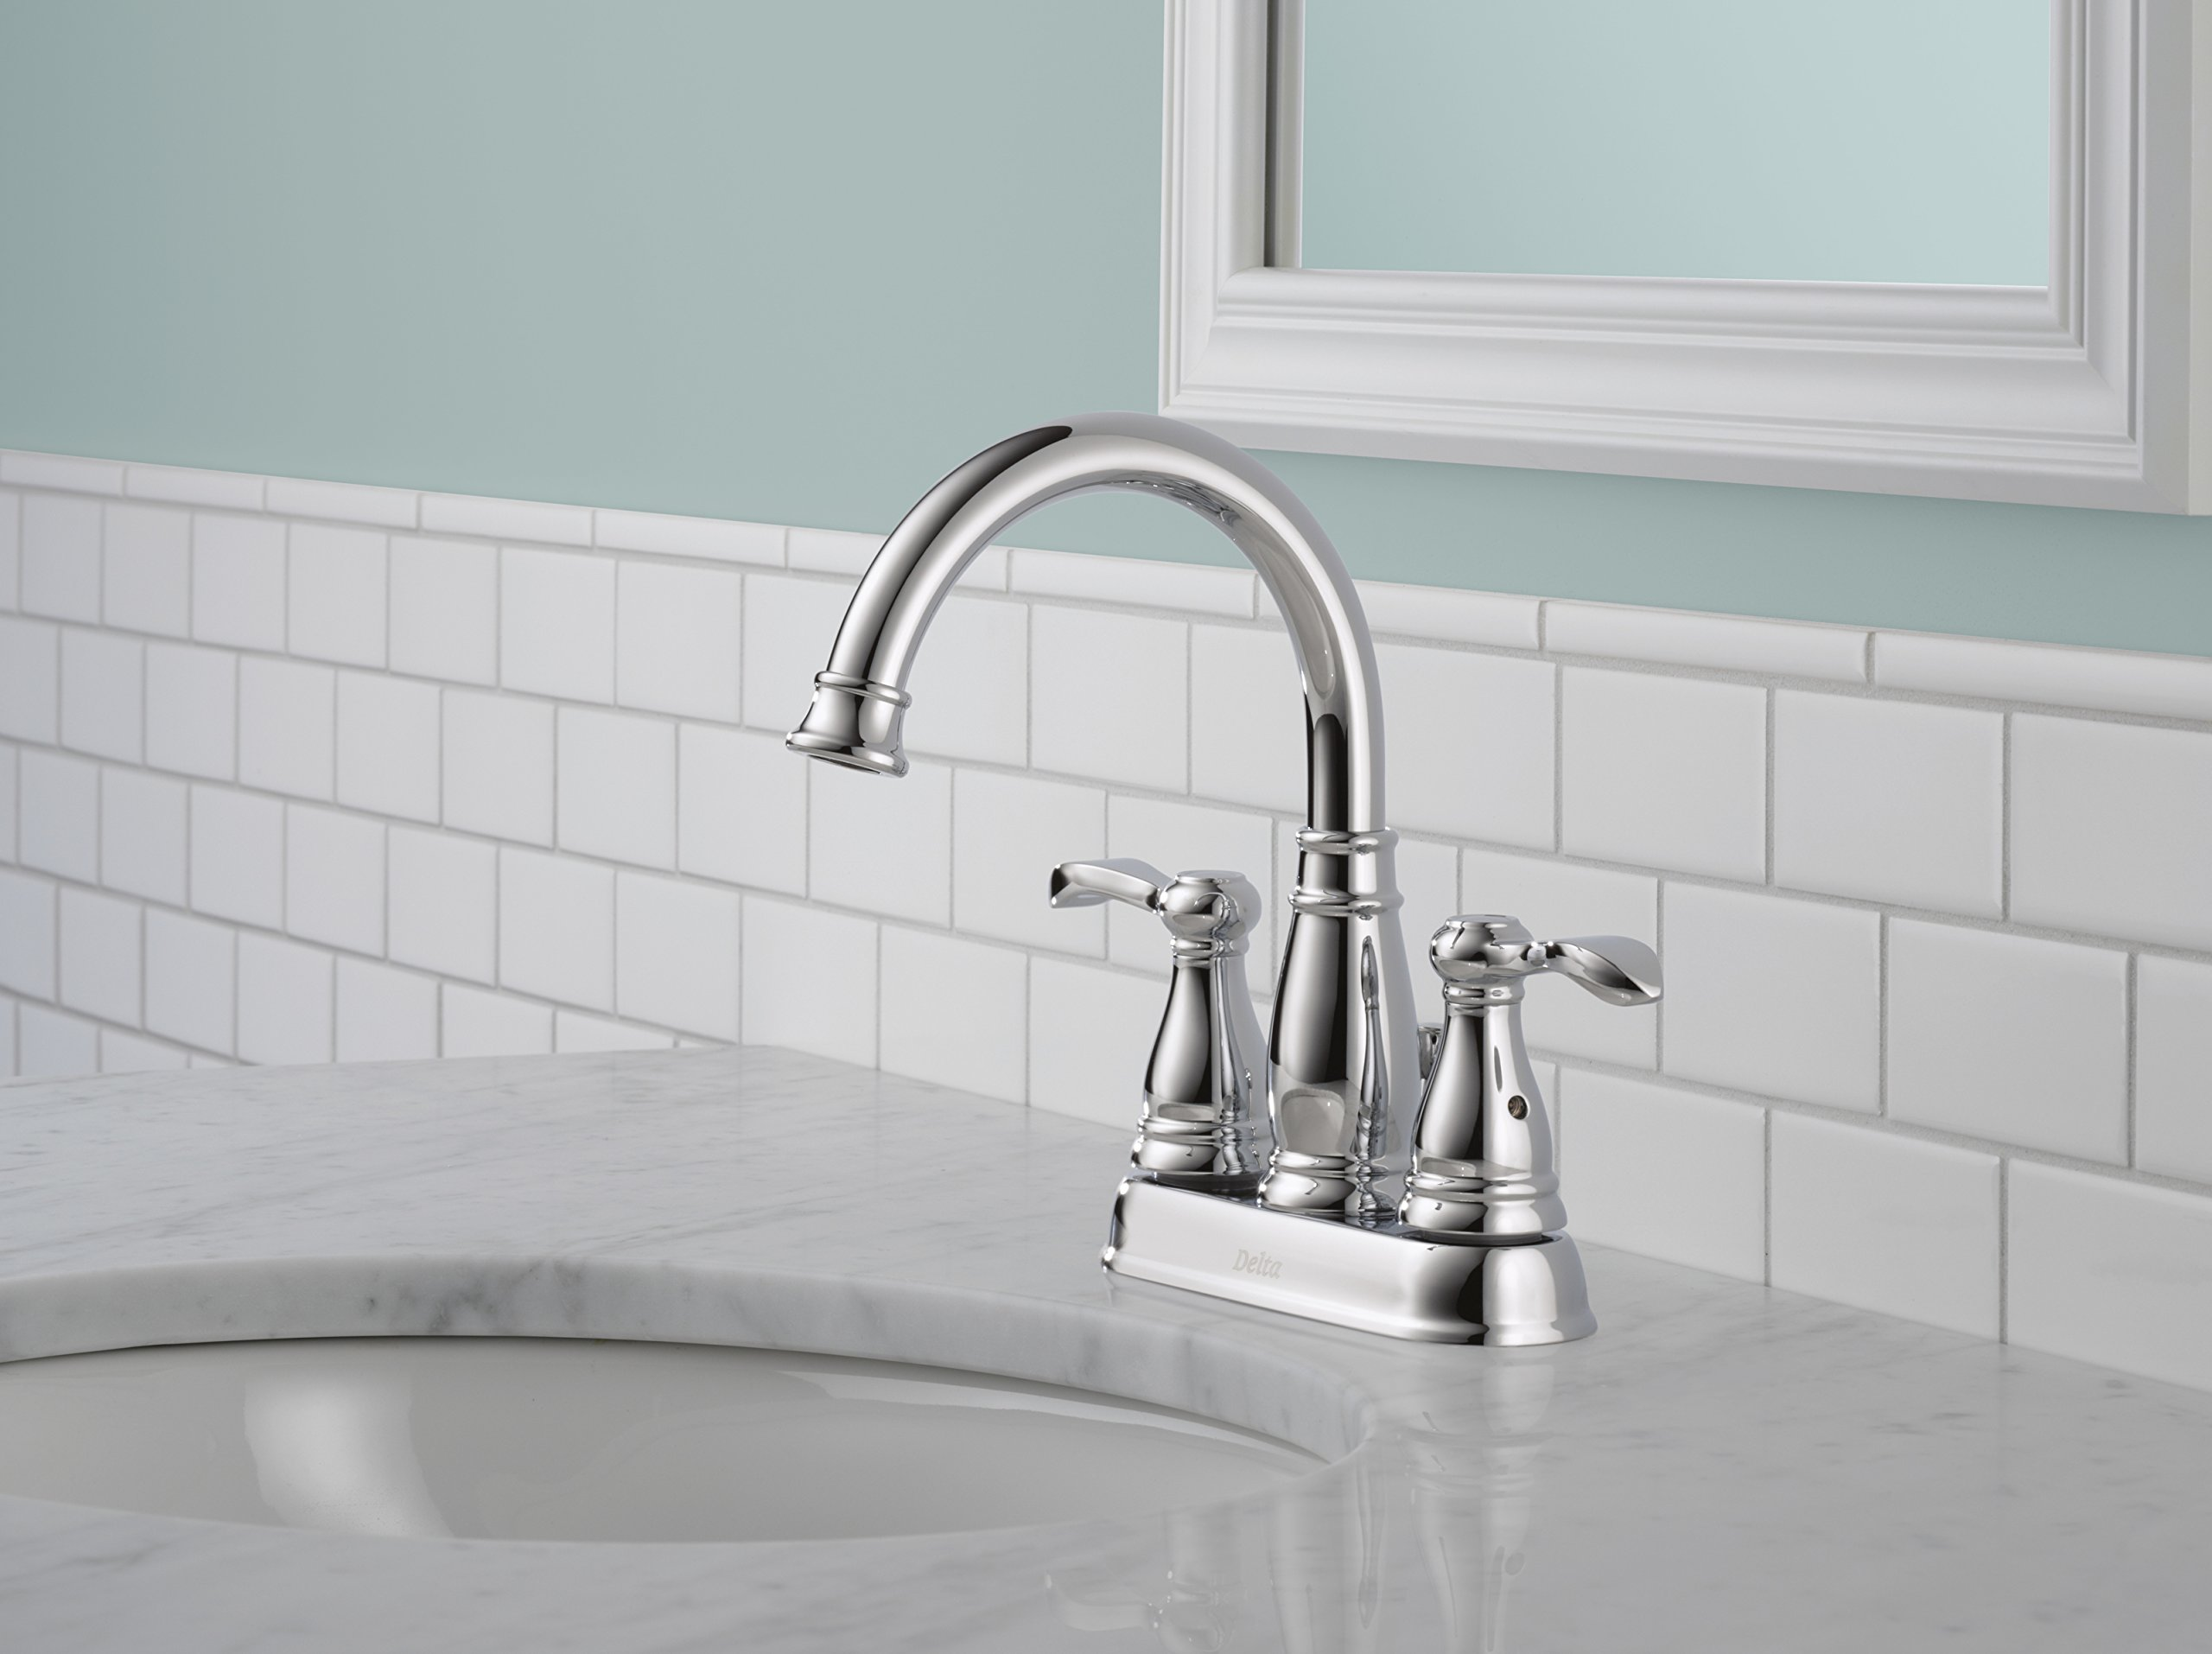 Delta 25984LF Porter Two Handle Centerset Bathroom, Chrome by DELTA FAUCET